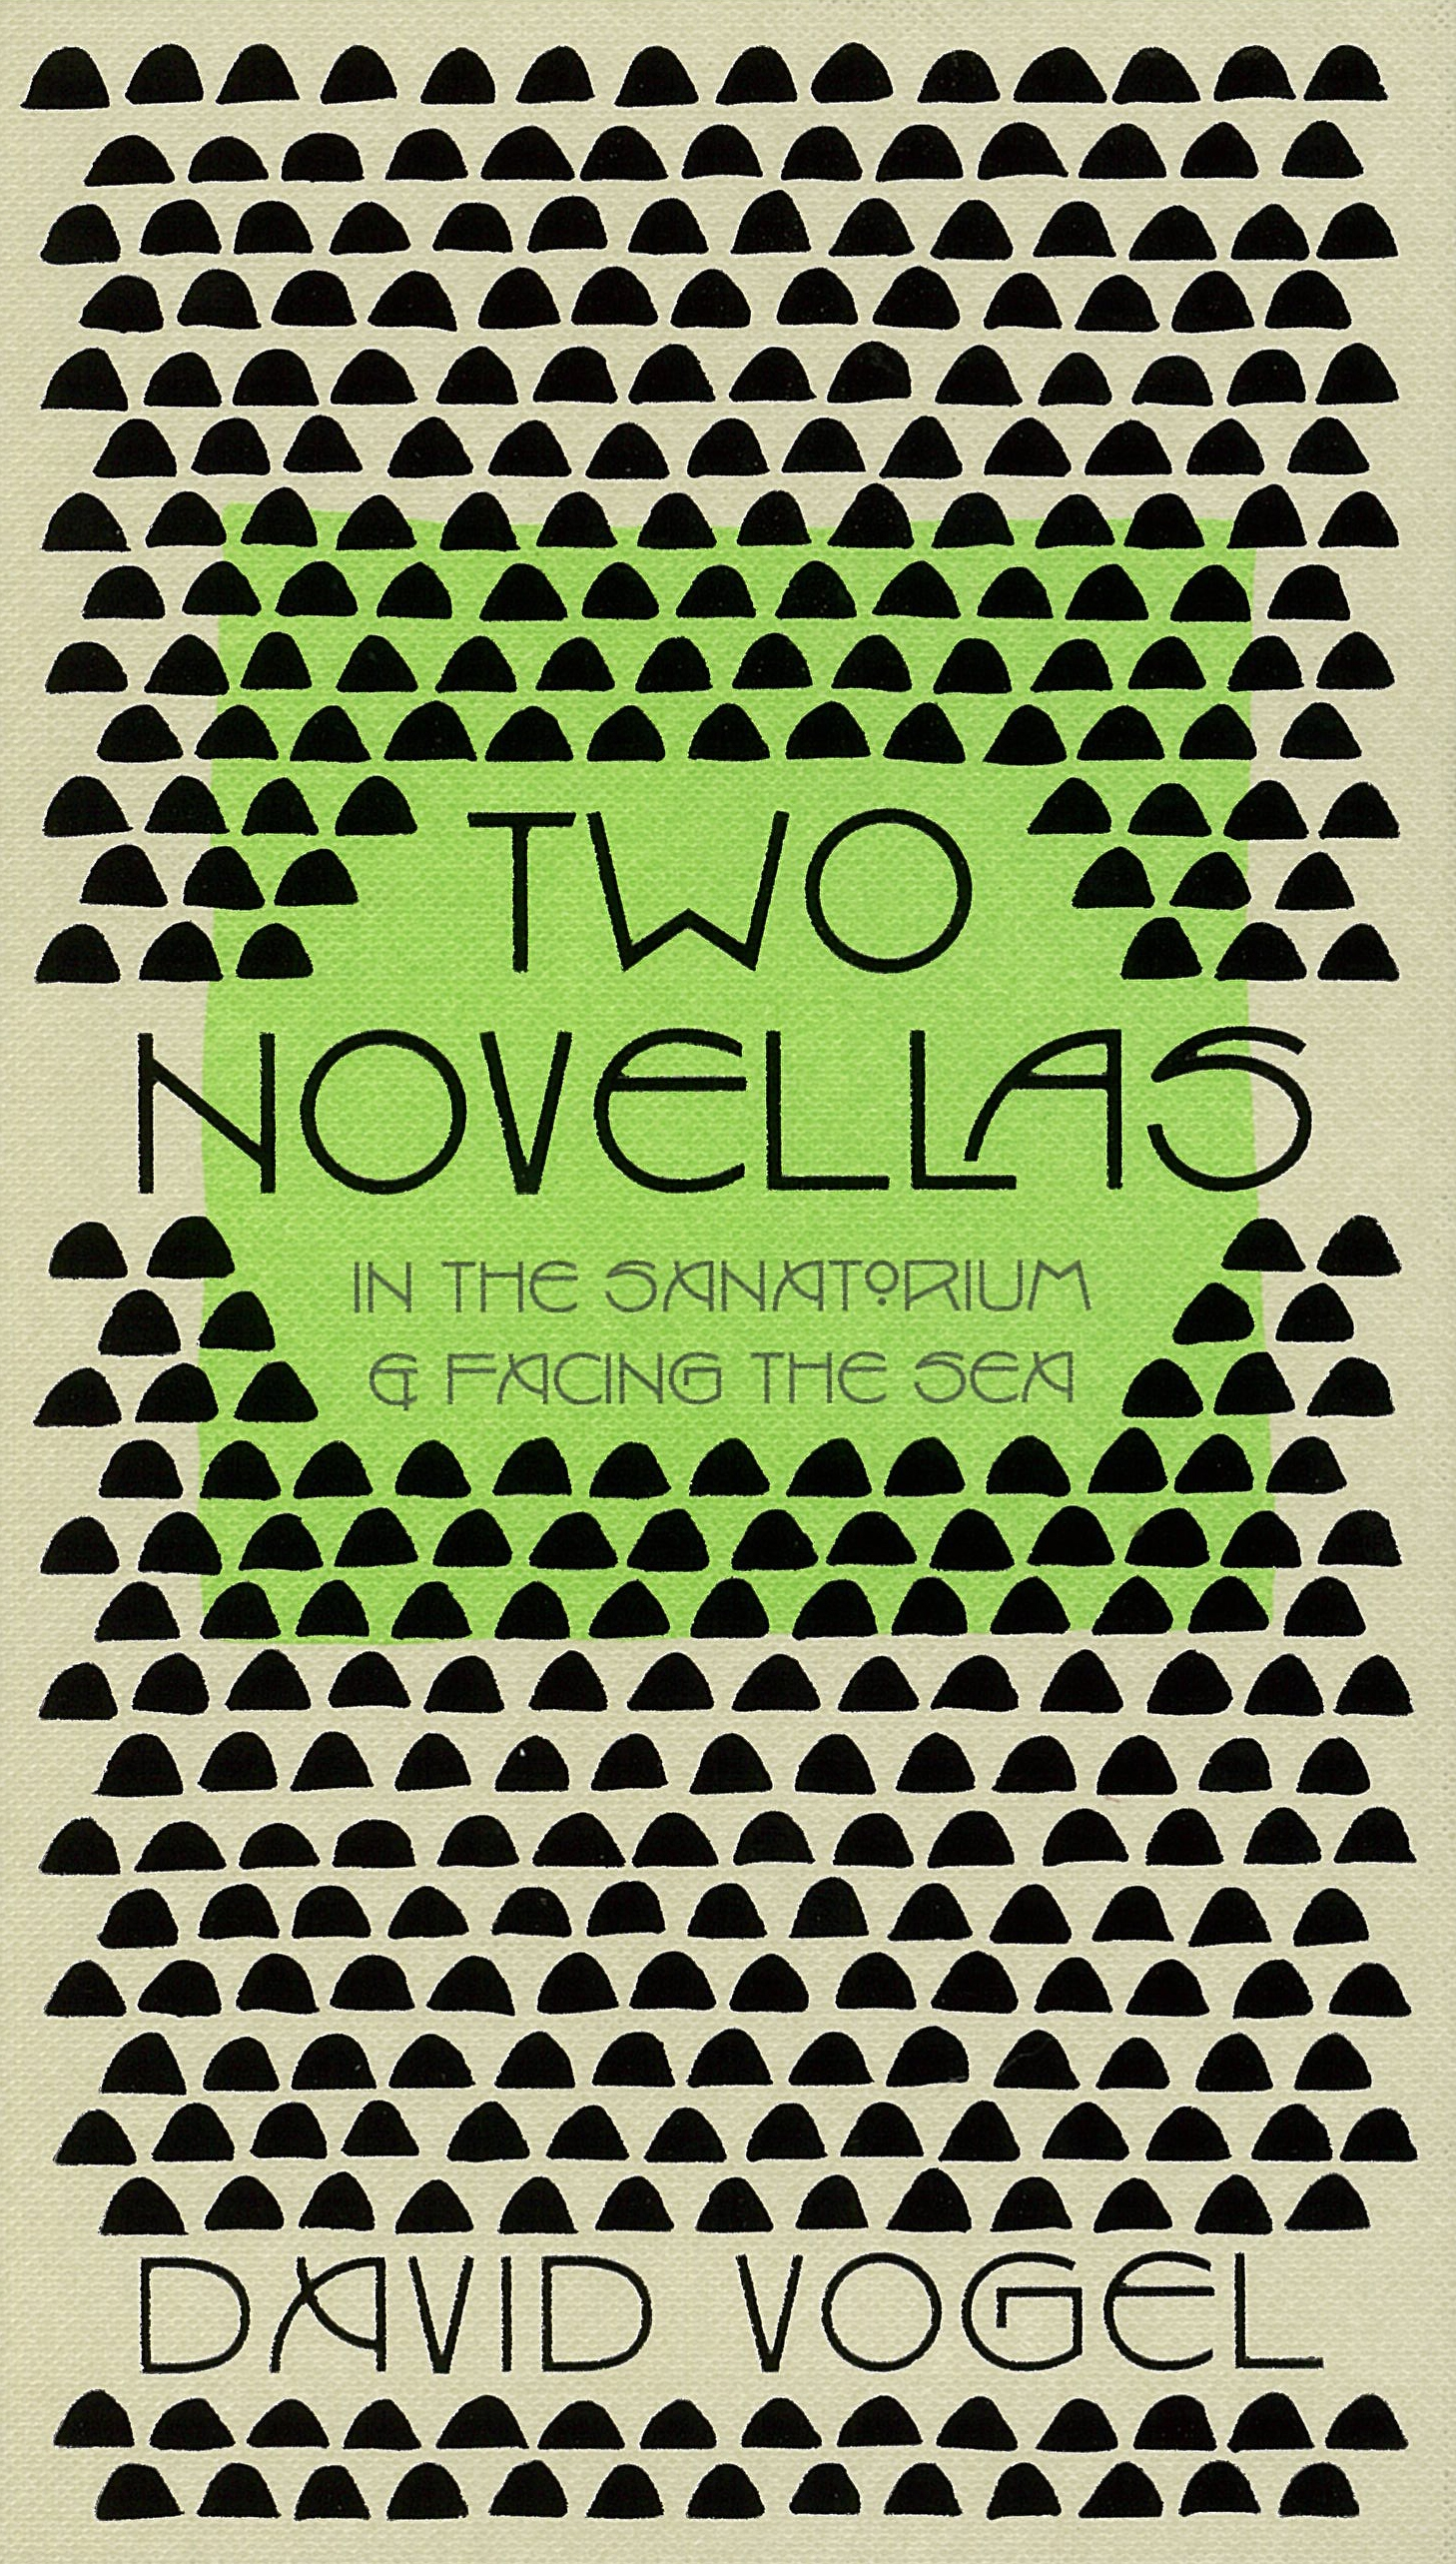 Book Cover:  Two Novellas: In the Sanatorium & Facing the Sea